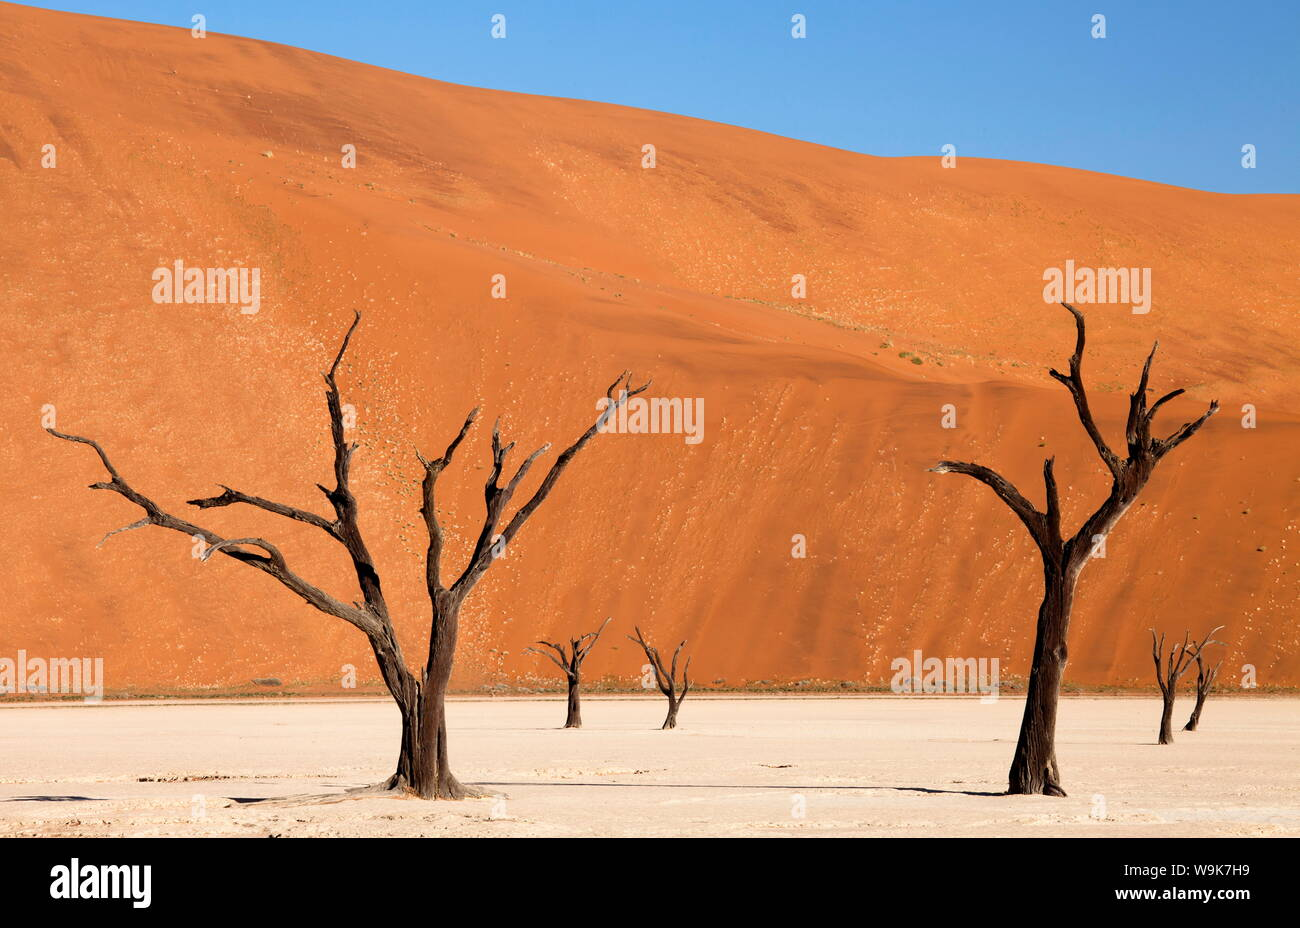 Dead camelthorn trees said to be centuries old against the towering orange sand dunes of the Namib Desert at Dead Vlei, Namib Desert, Namibia Stock Photo